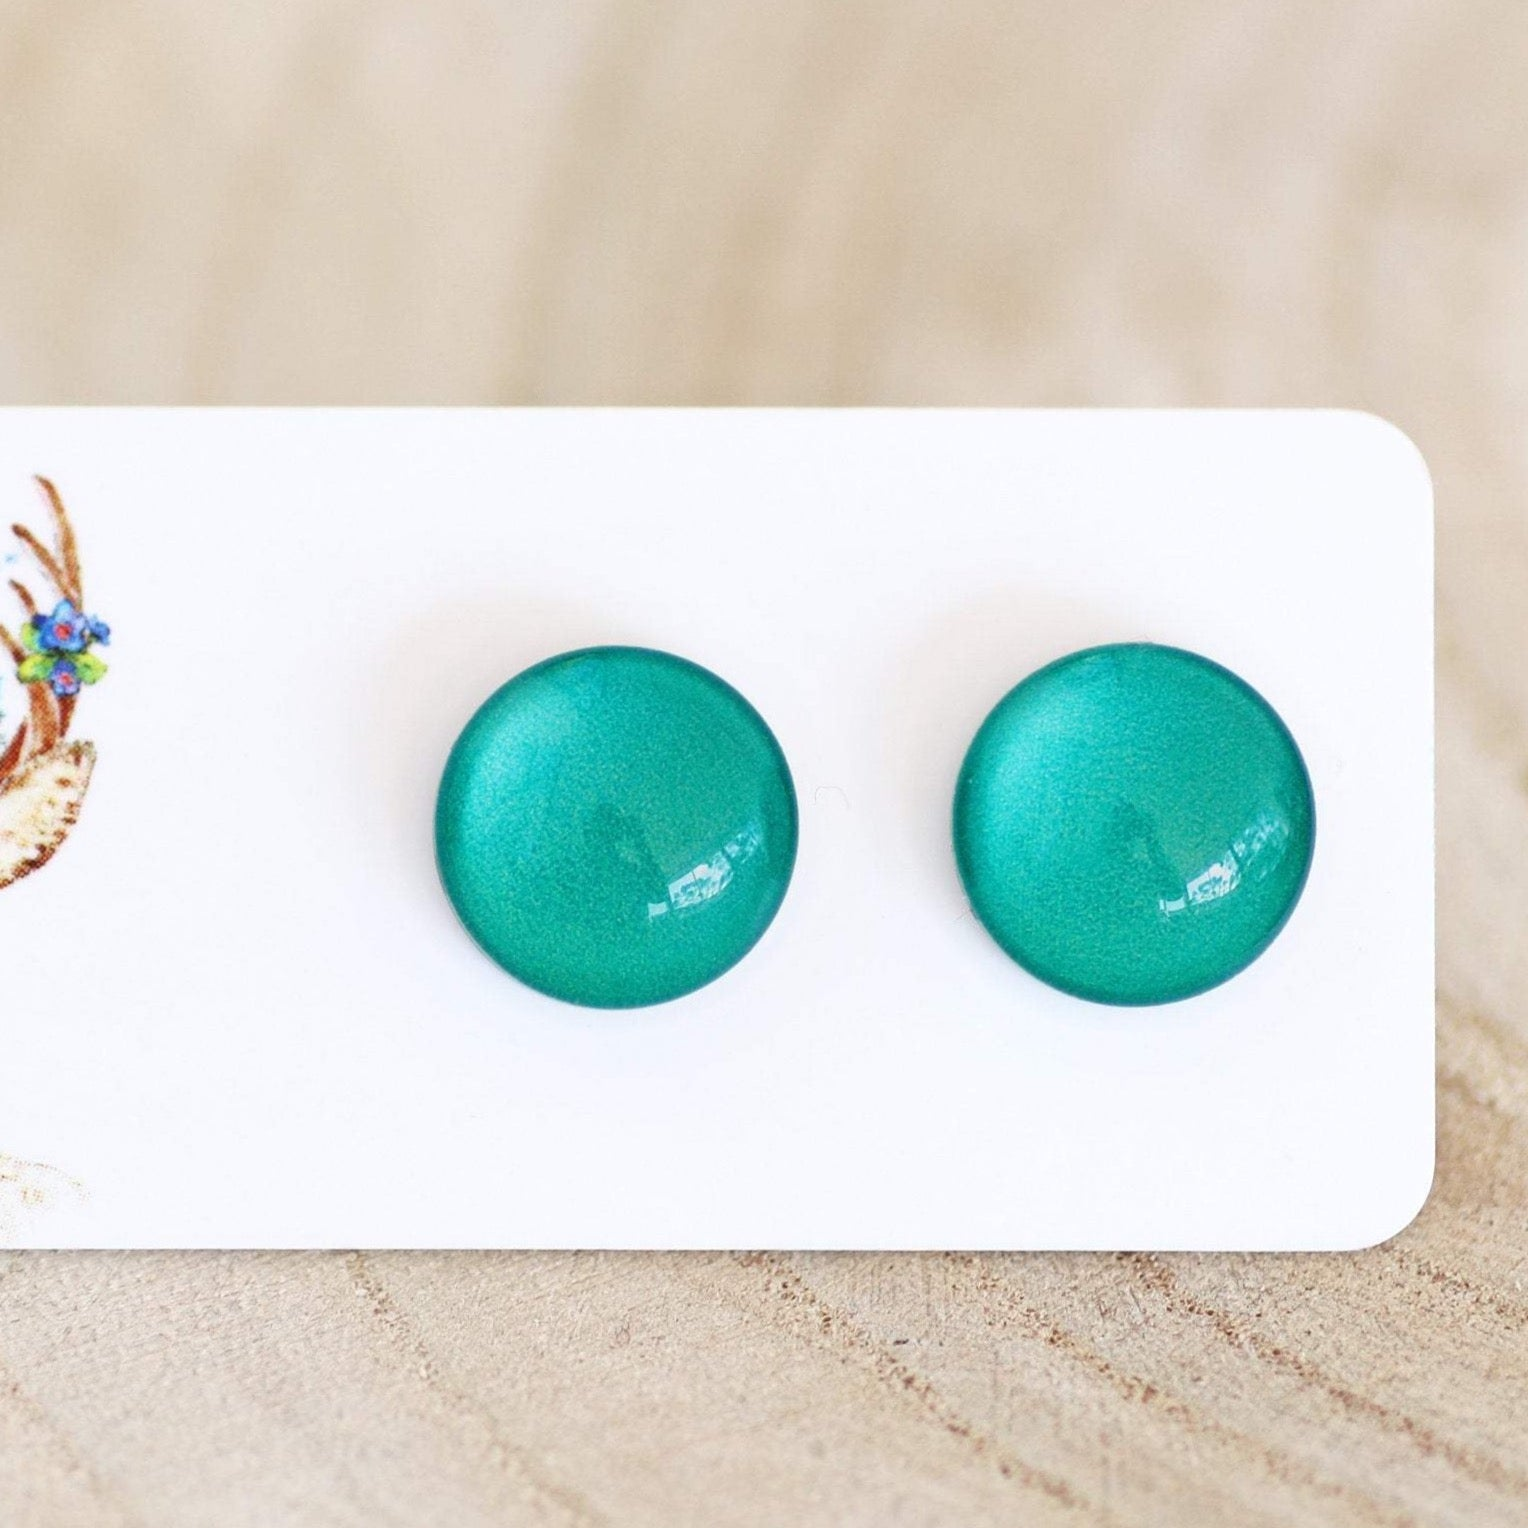 12mm GLASS STUDS - TEAL